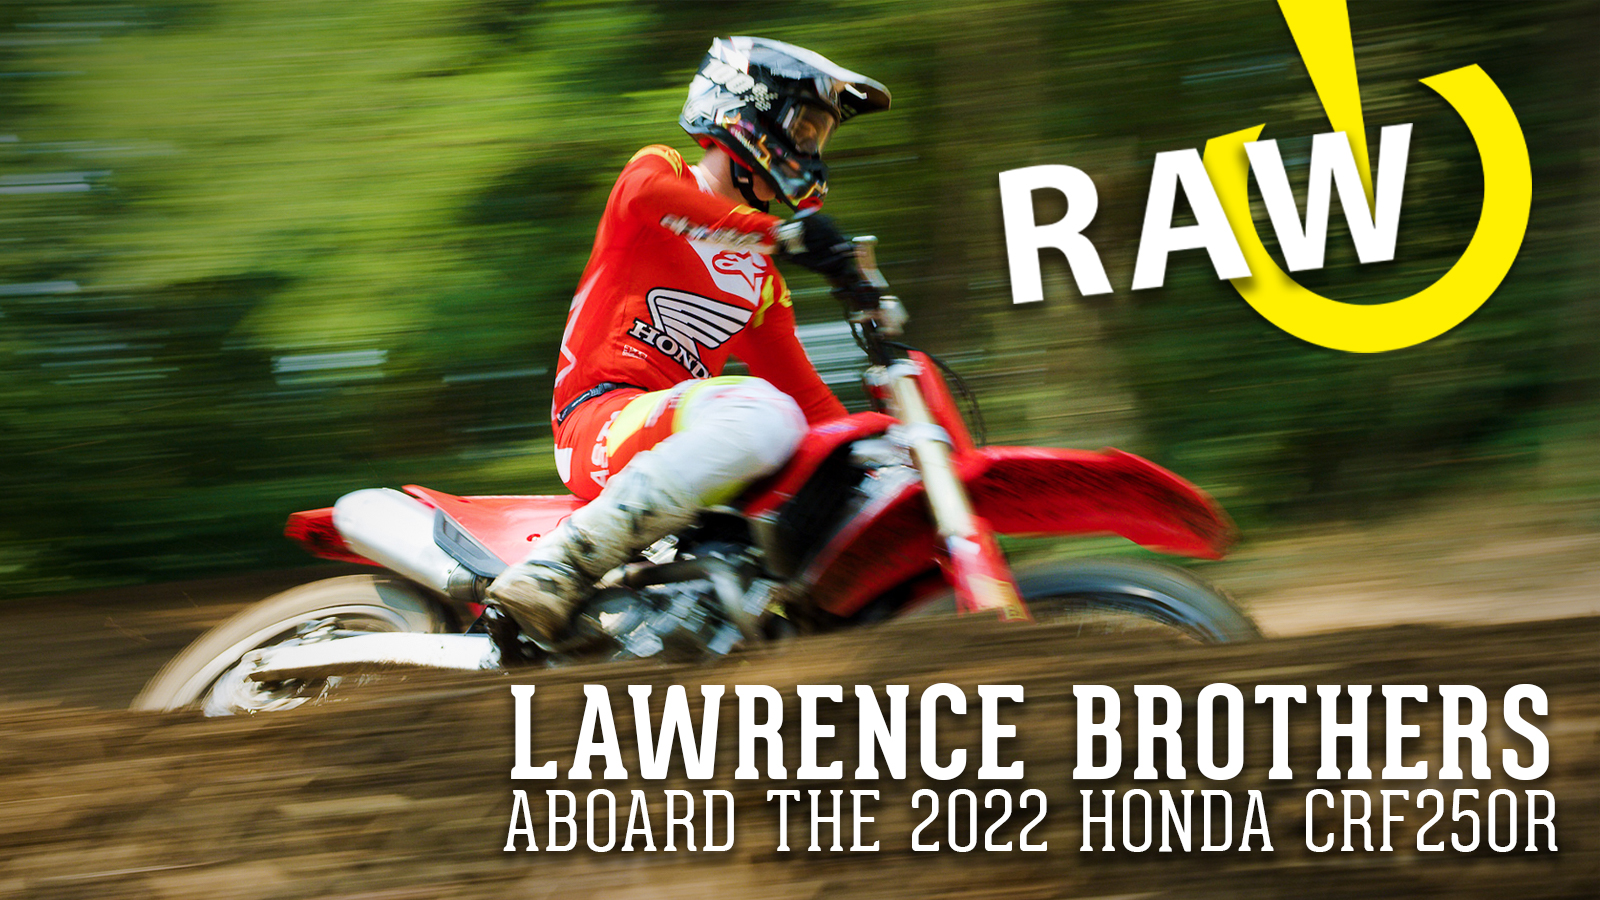 RAW   Lawrence Brothers Aboard the 2022 Honda CRF250R